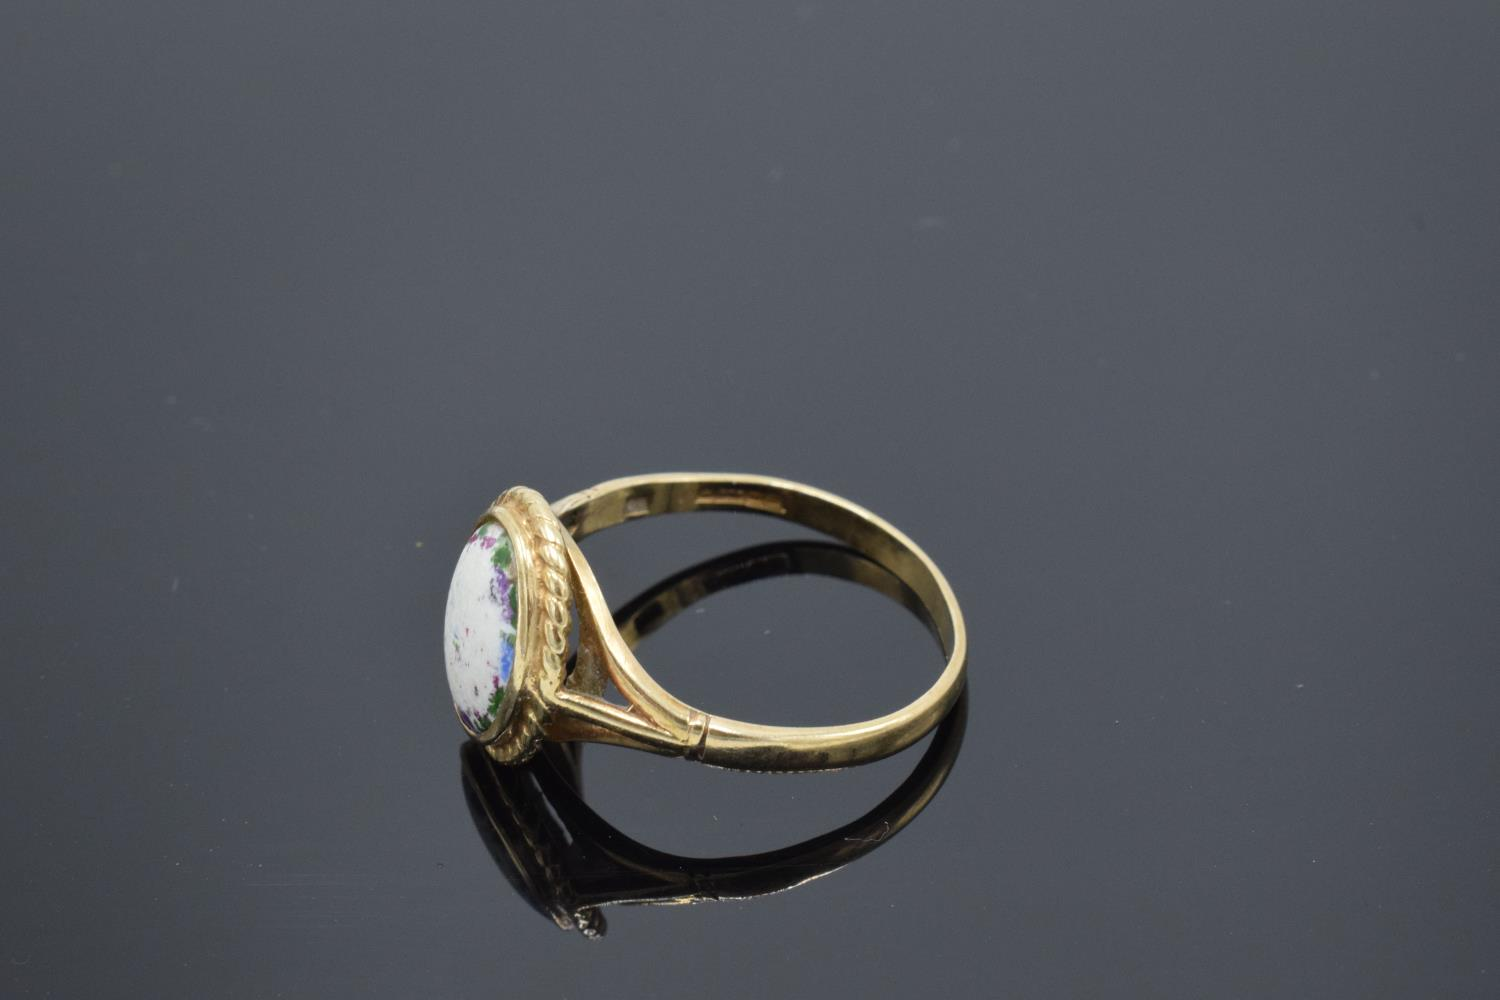 9ct gold ring set with a oval stone. 2.5 grams gross weight. UK size S. Full hallmarks. - Image 3 of 3